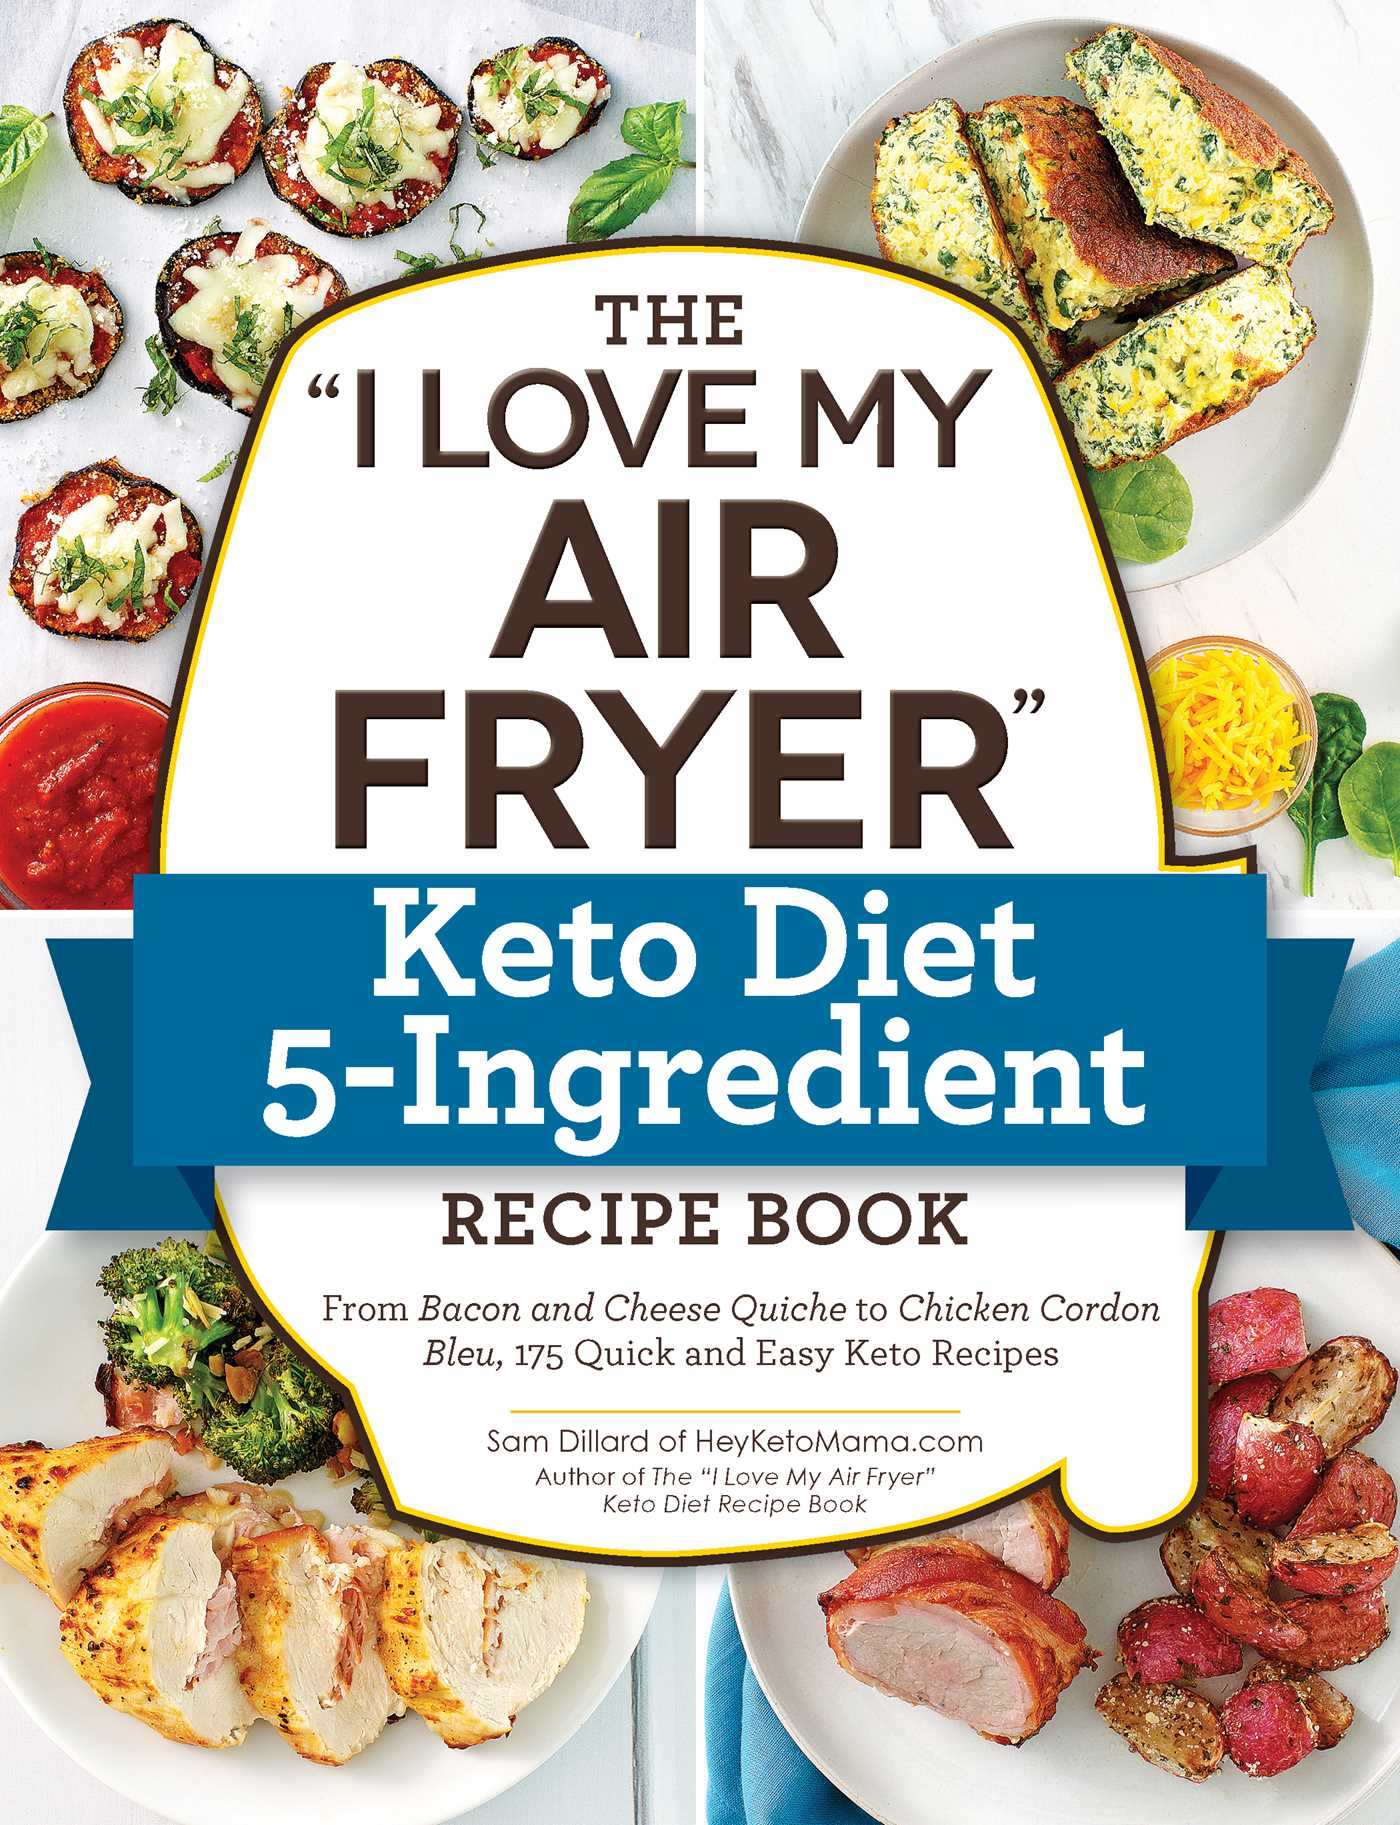 [PDF] [EPUB] The I Love My Air Fryer Keto Diet 5-Ingredient Recipe Book: From Bacon and Cheese Quiche to Chicken Cordon Bleu, 175 Quick and Easy Keto Recipes Download by Sam Dillard